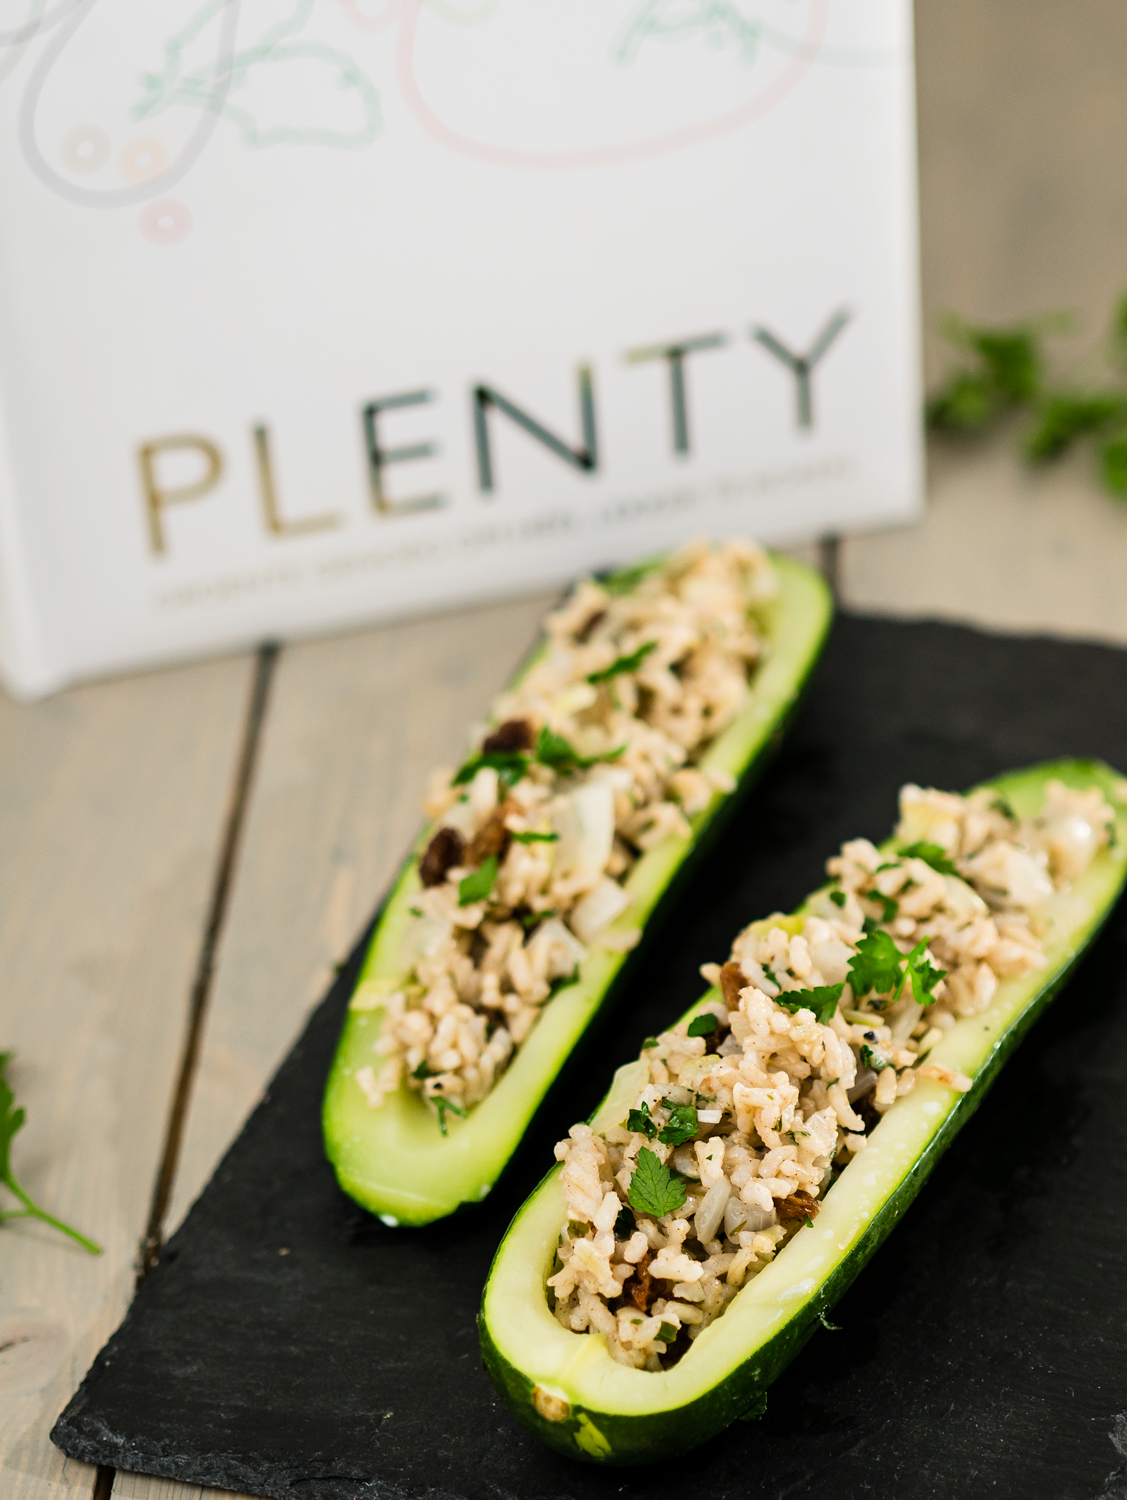 Iets Nieuws Review: plenty en vegetarisch gevulde courgette - The answer is food &RA58